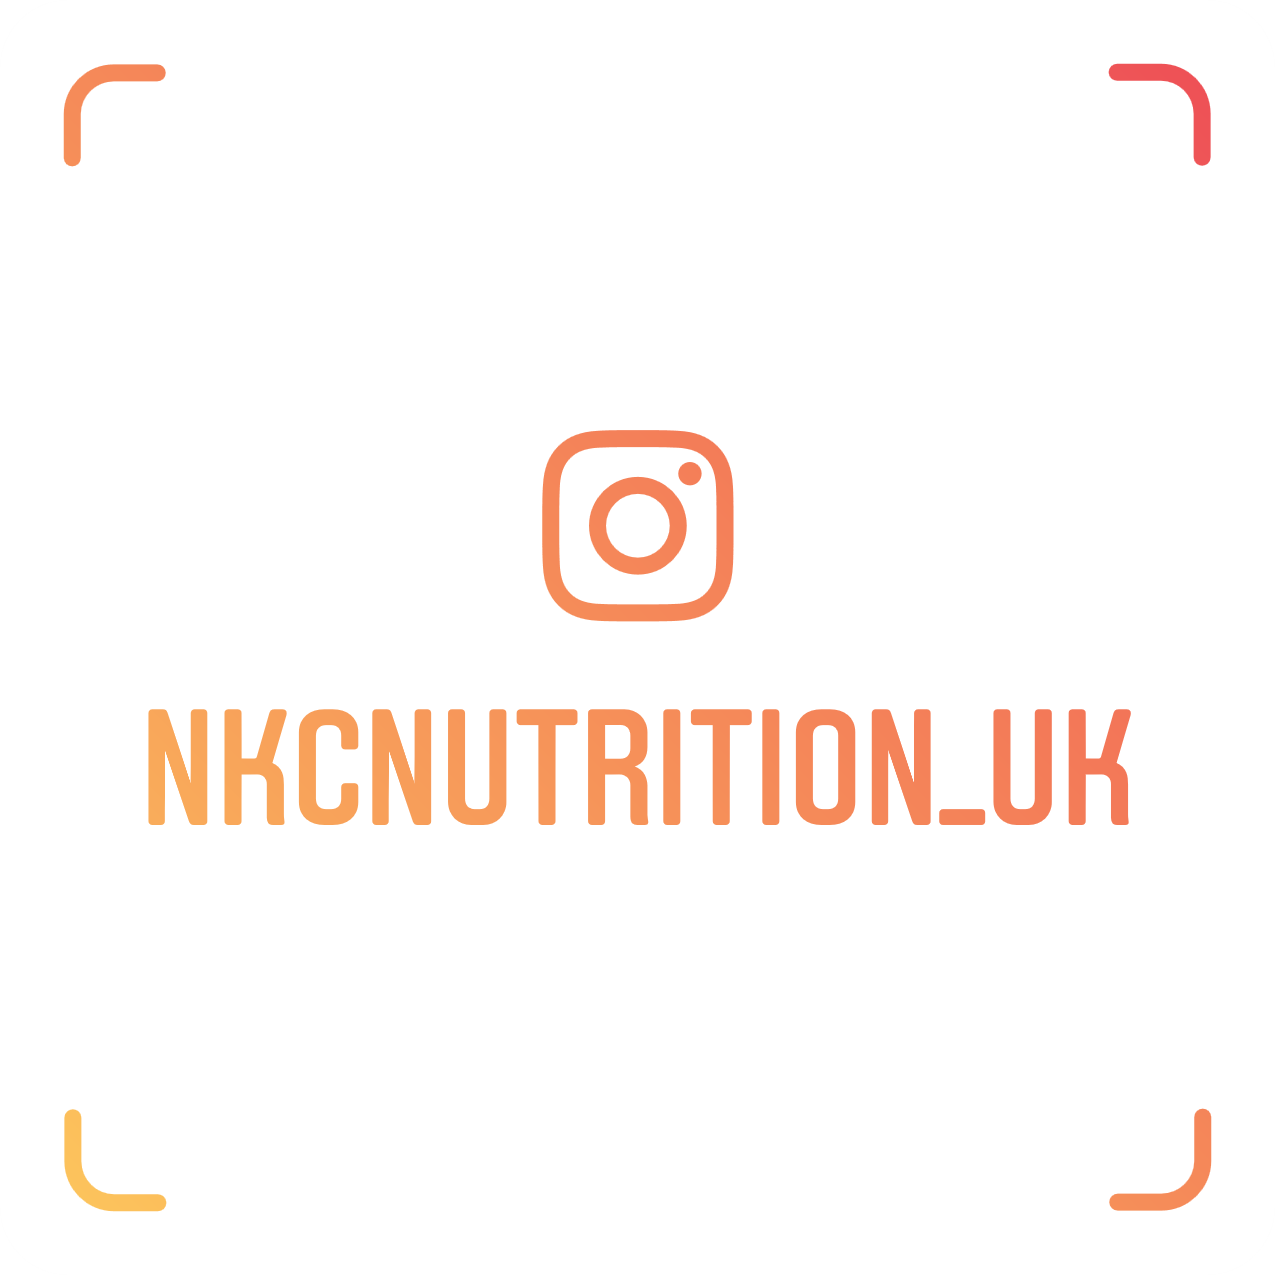 nkcnutrition_uk_nametag (1)orange.png